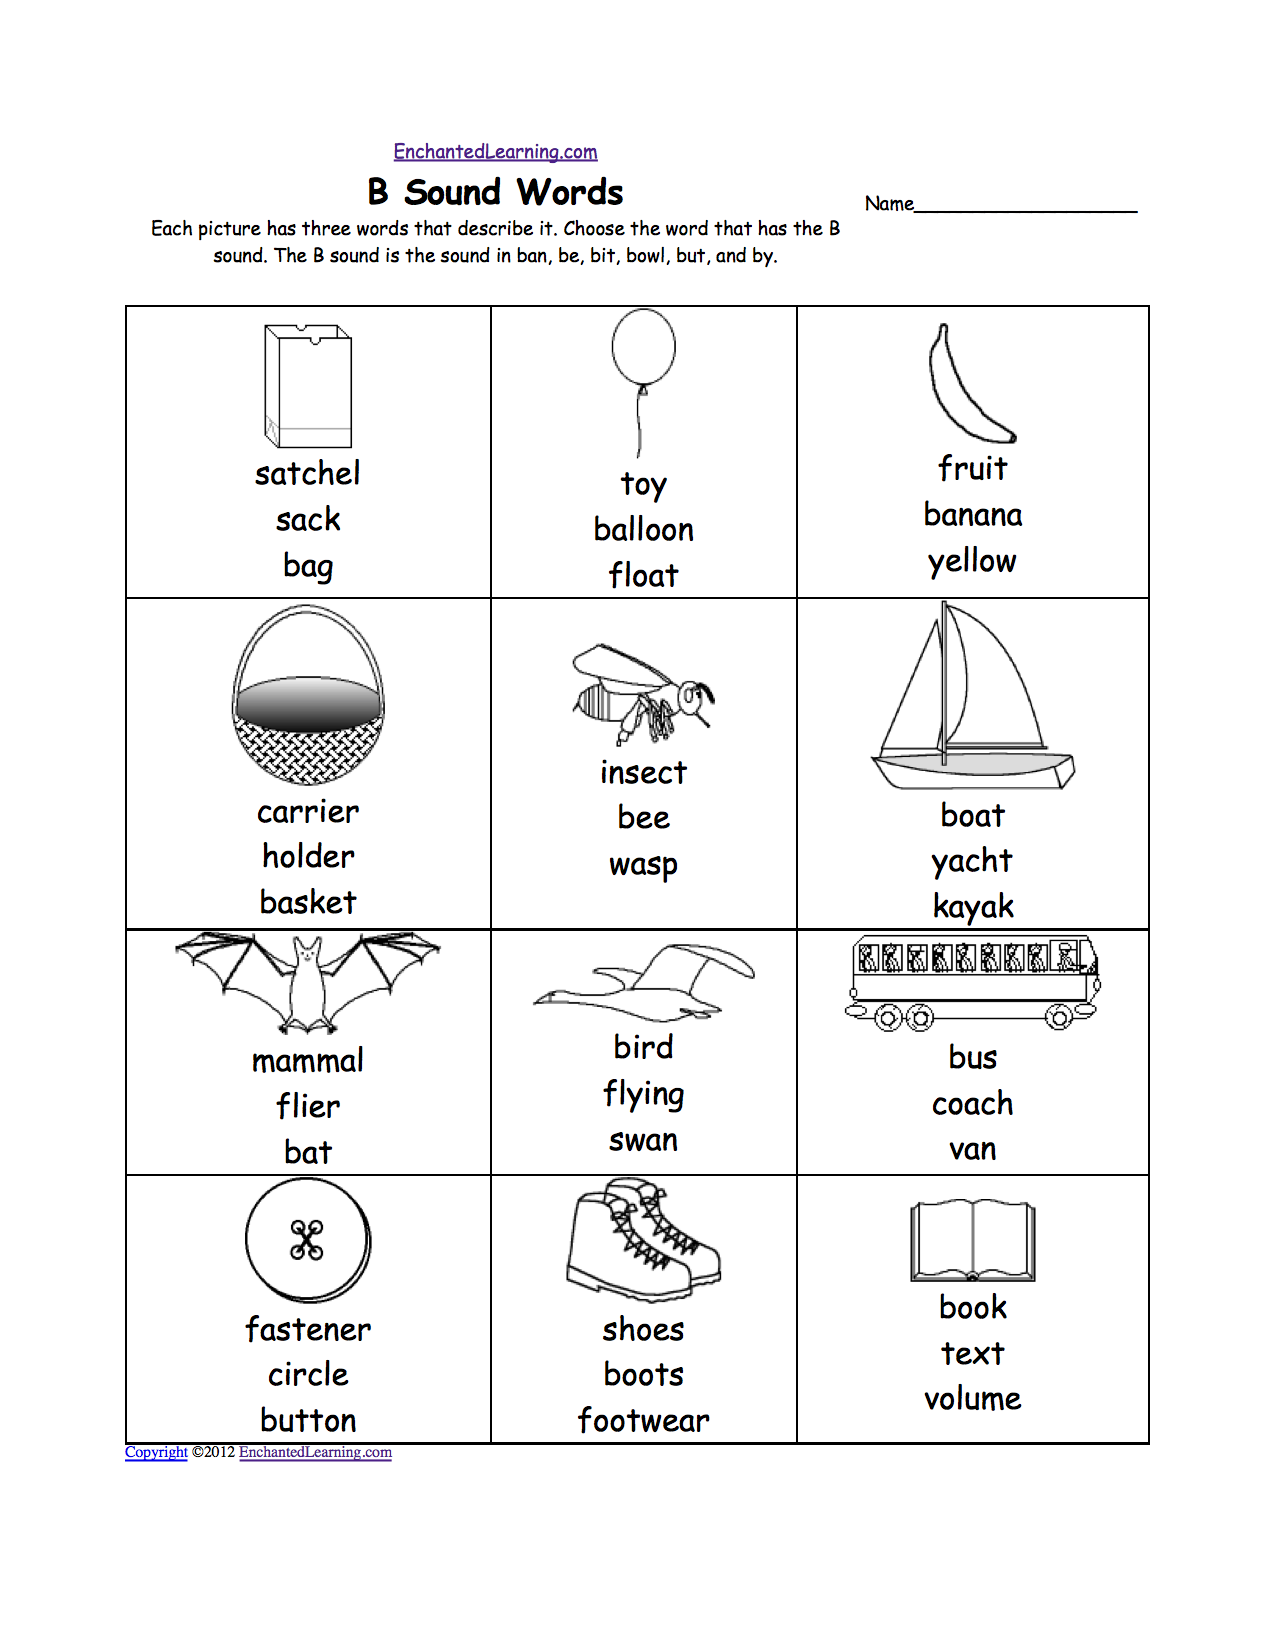 Weirdmailus  Pleasing Phonics Worksheets Multiple Choice Worksheets To Print  With Lovely Quotbquot Sound Phonics Worksheet Multiple Choice Each Picture Has Three Words That Describe It Choose The Word That Has A Quotbquot Sound The Quotbquot Sound Is The Sound  With Agreeable Theodore Roosevelt Worksheet Also Hide Worksheet In Addition Past Tense Esl Worksheets And Lines And Line Segments Worksheets As Well As Critical Appraisal Worksheet Additionally  Worksheet From Enchantedlearningcom With Weirdmailus  Lovely Phonics Worksheets Multiple Choice Worksheets To Print  With Agreeable Quotbquot Sound Phonics Worksheet Multiple Choice Each Picture Has Three Words That Describe It Choose The Word That Has A Quotbquot Sound The Quotbquot Sound Is The Sound  And Pleasing Theodore Roosevelt Worksheet Also Hide Worksheet In Addition Past Tense Esl Worksheets From Enchantedlearningcom